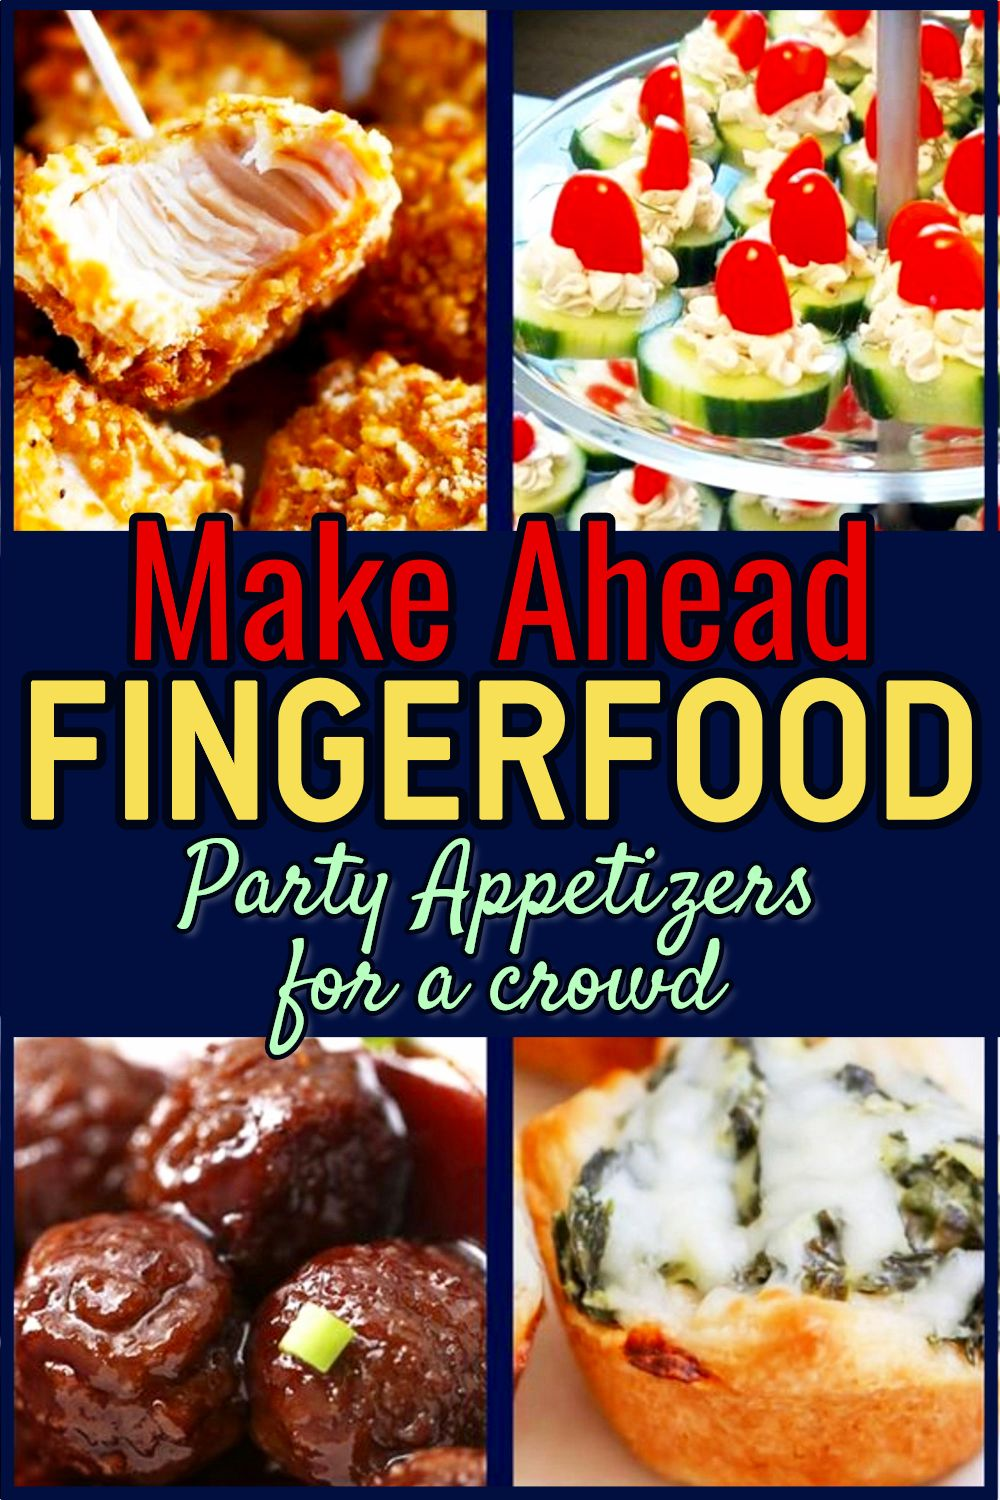 Fingerfood Party Appetizers-Make Ahead Appetizers for a Crowd You Can Make The Night Before